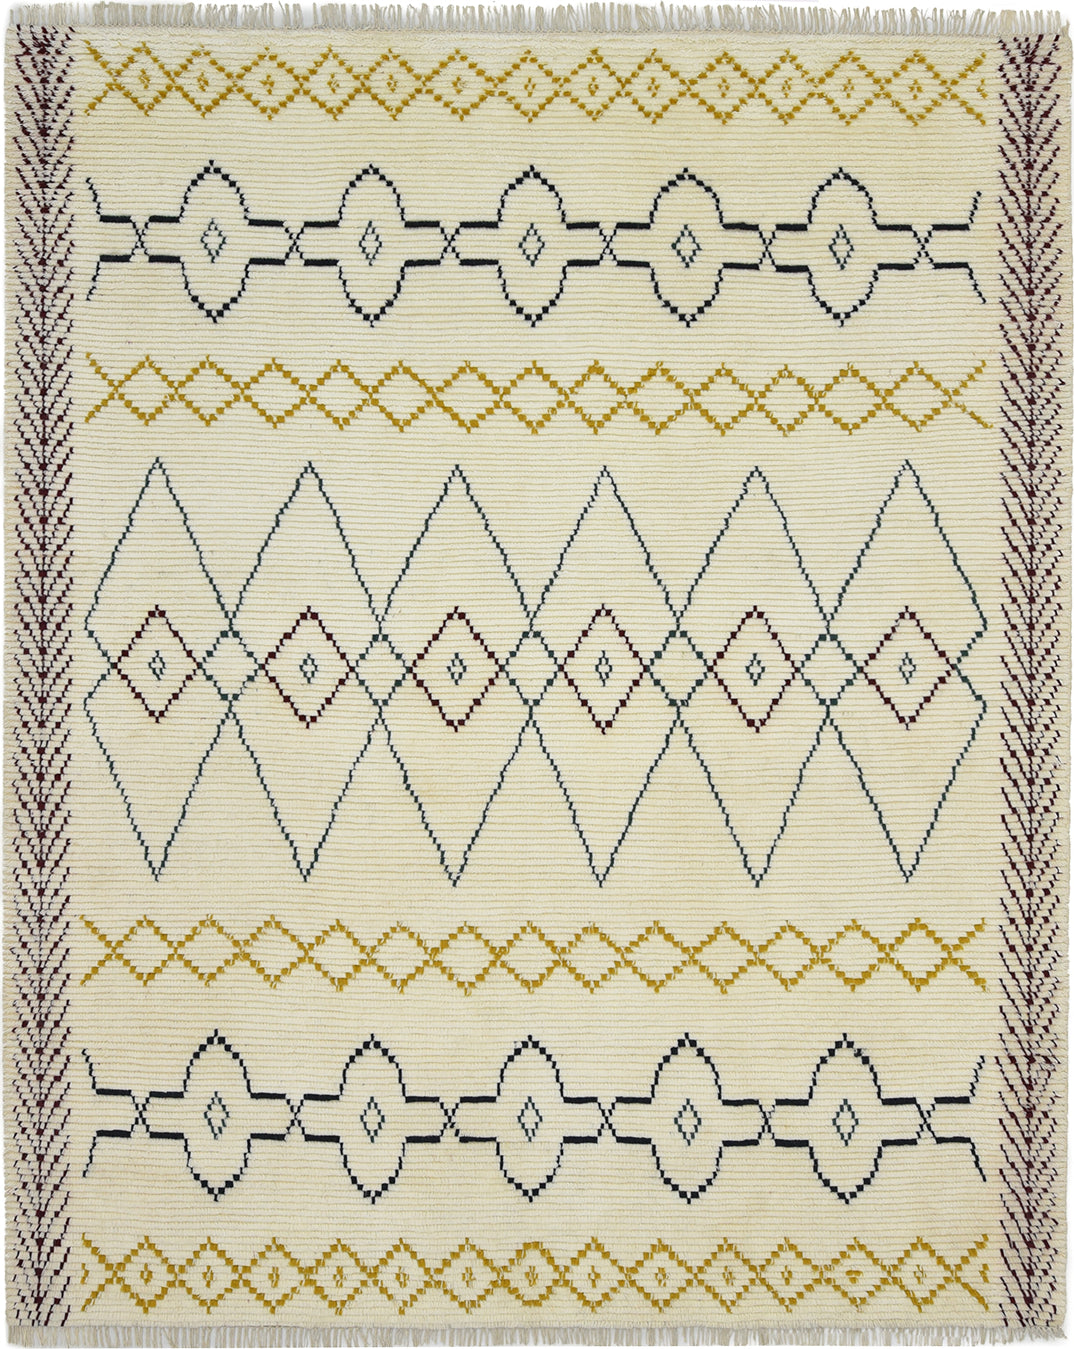 Solo Rugs Moroccan M8081-238 Ivory Area Rug main image